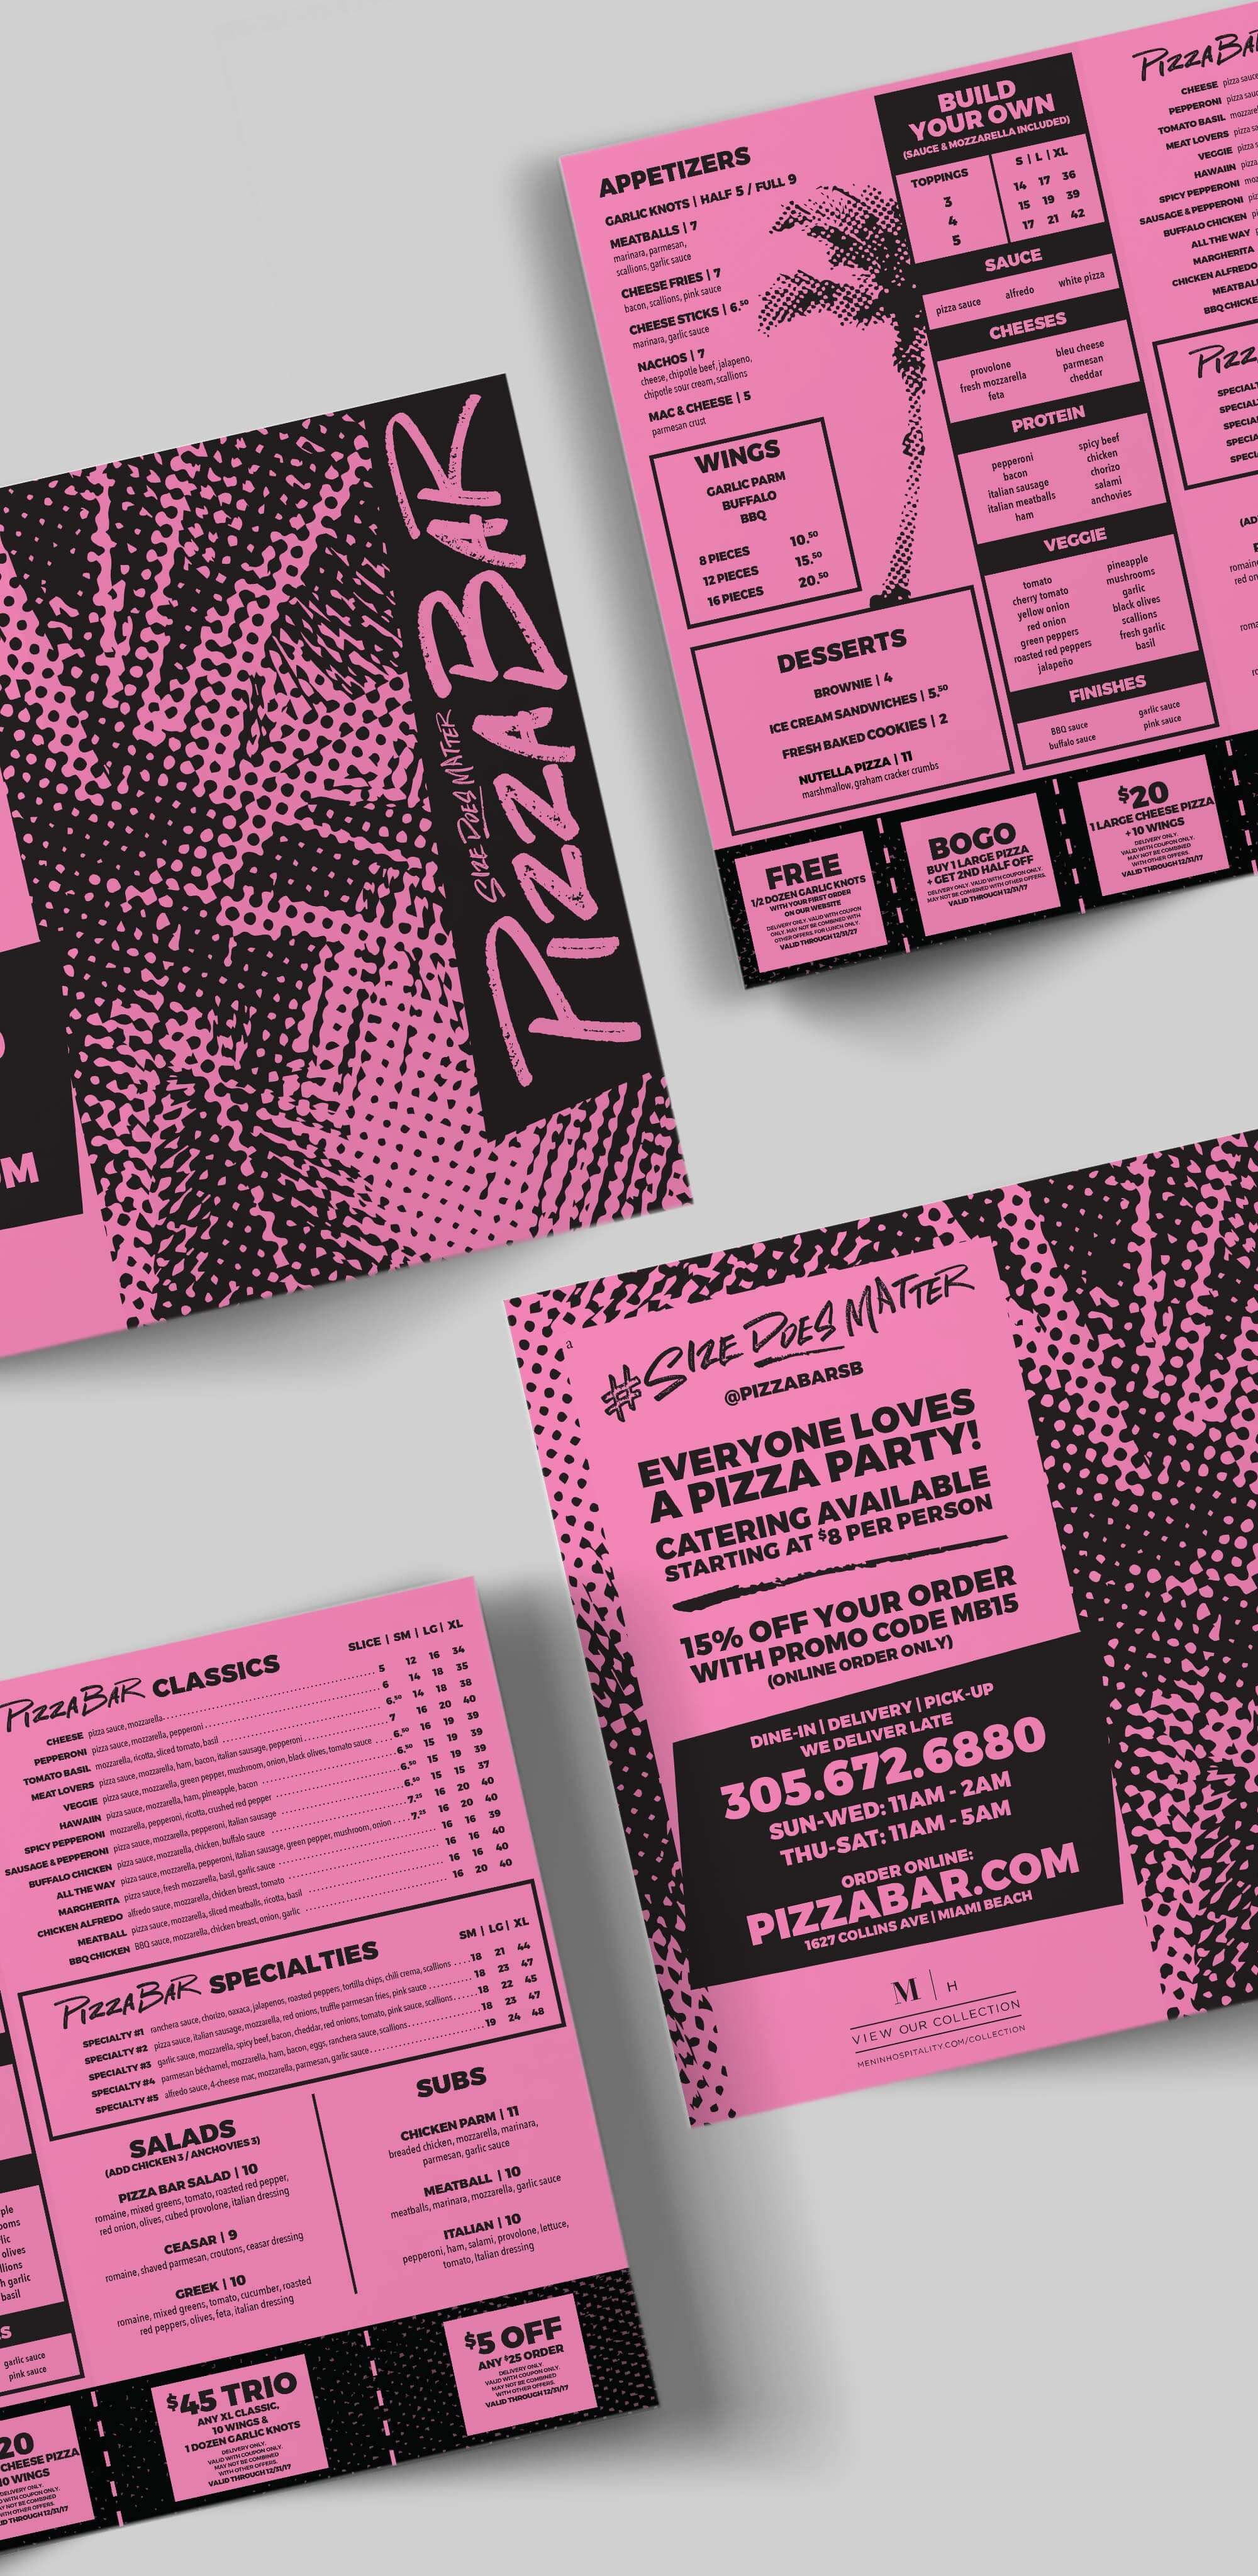 PIzza Bar branded menu design by Jacober Creative